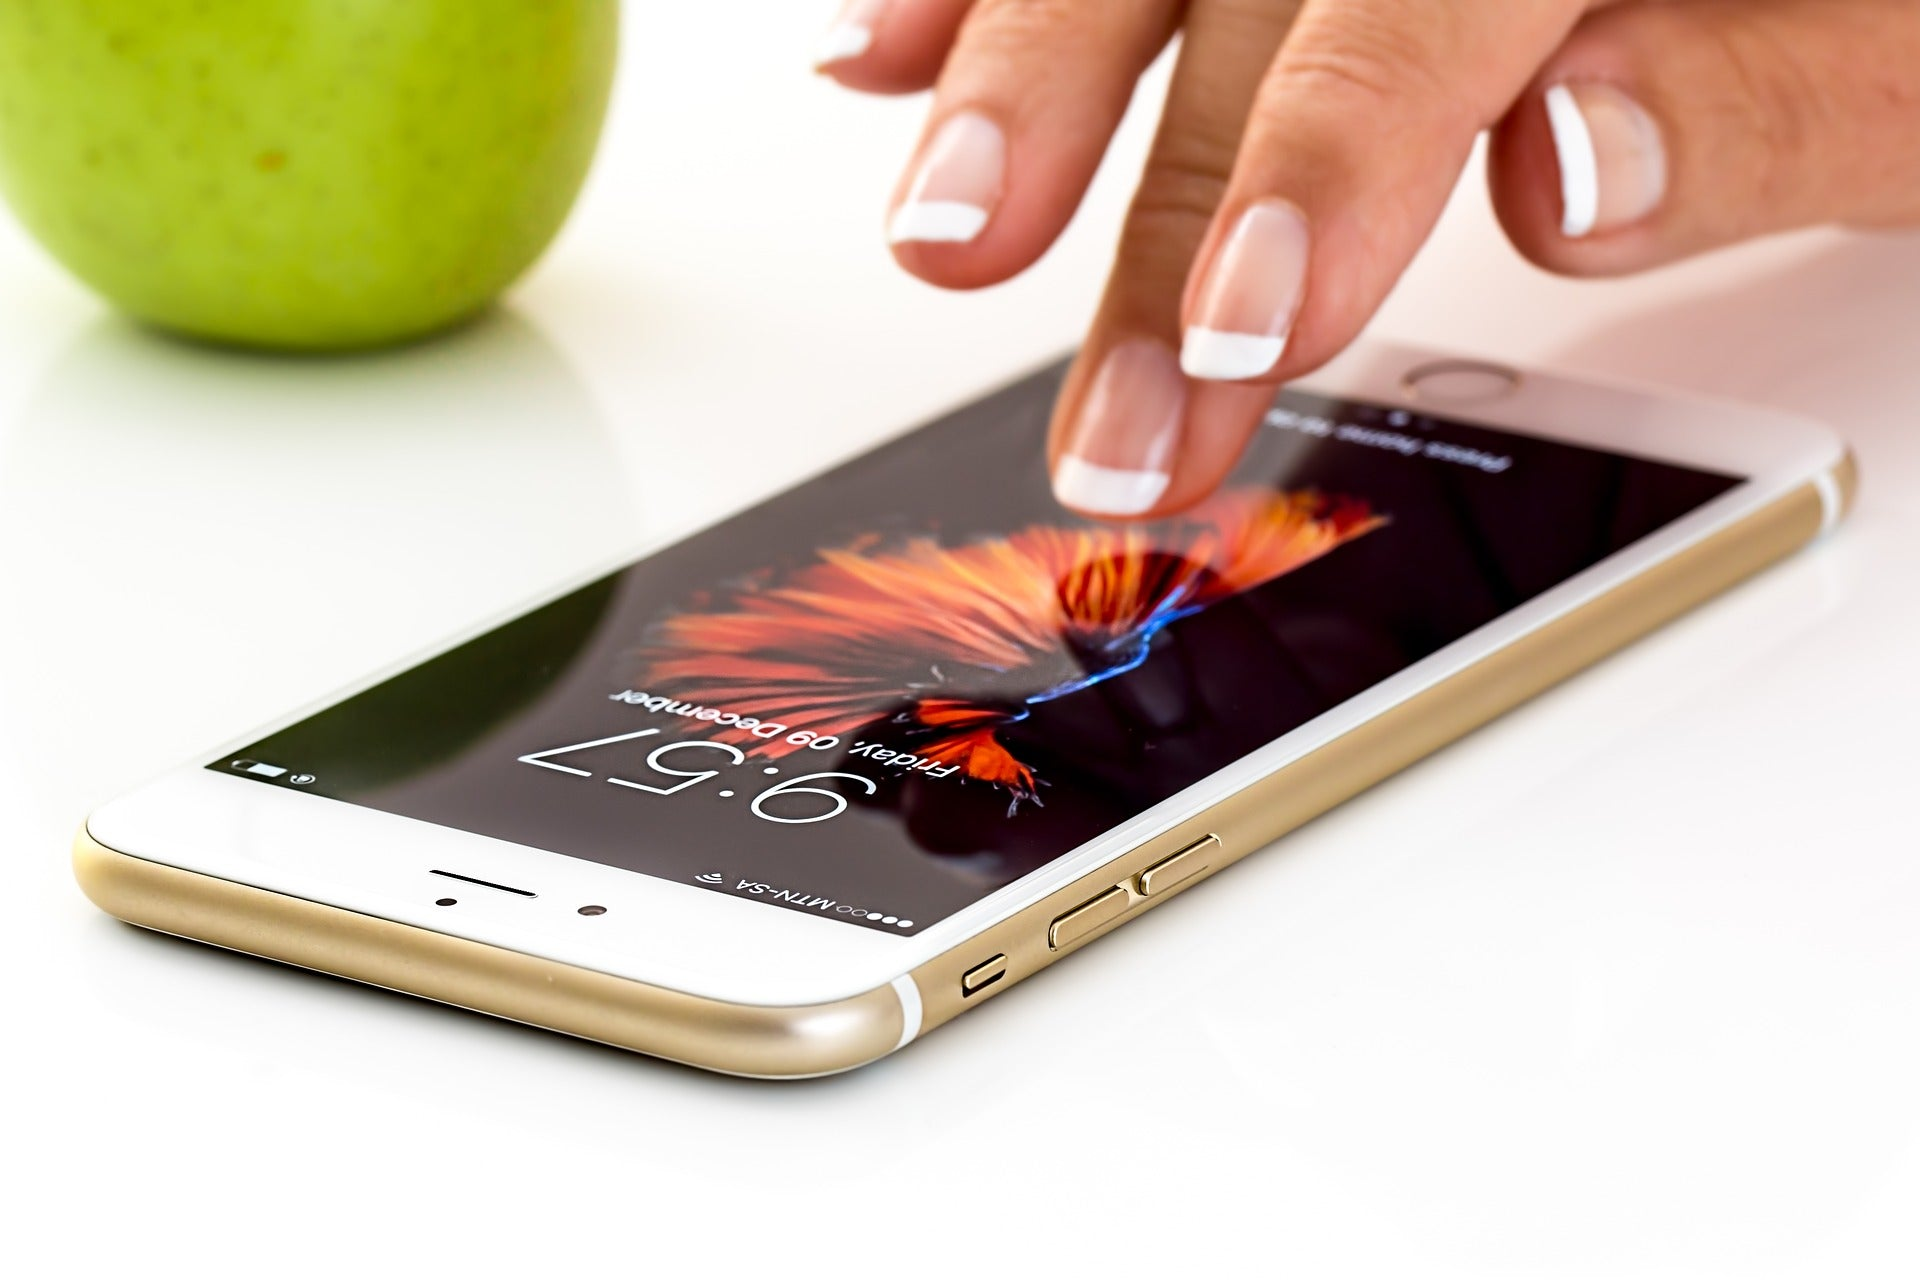 Phone Screen Cleaning Hacks That Do More Damage Than Good